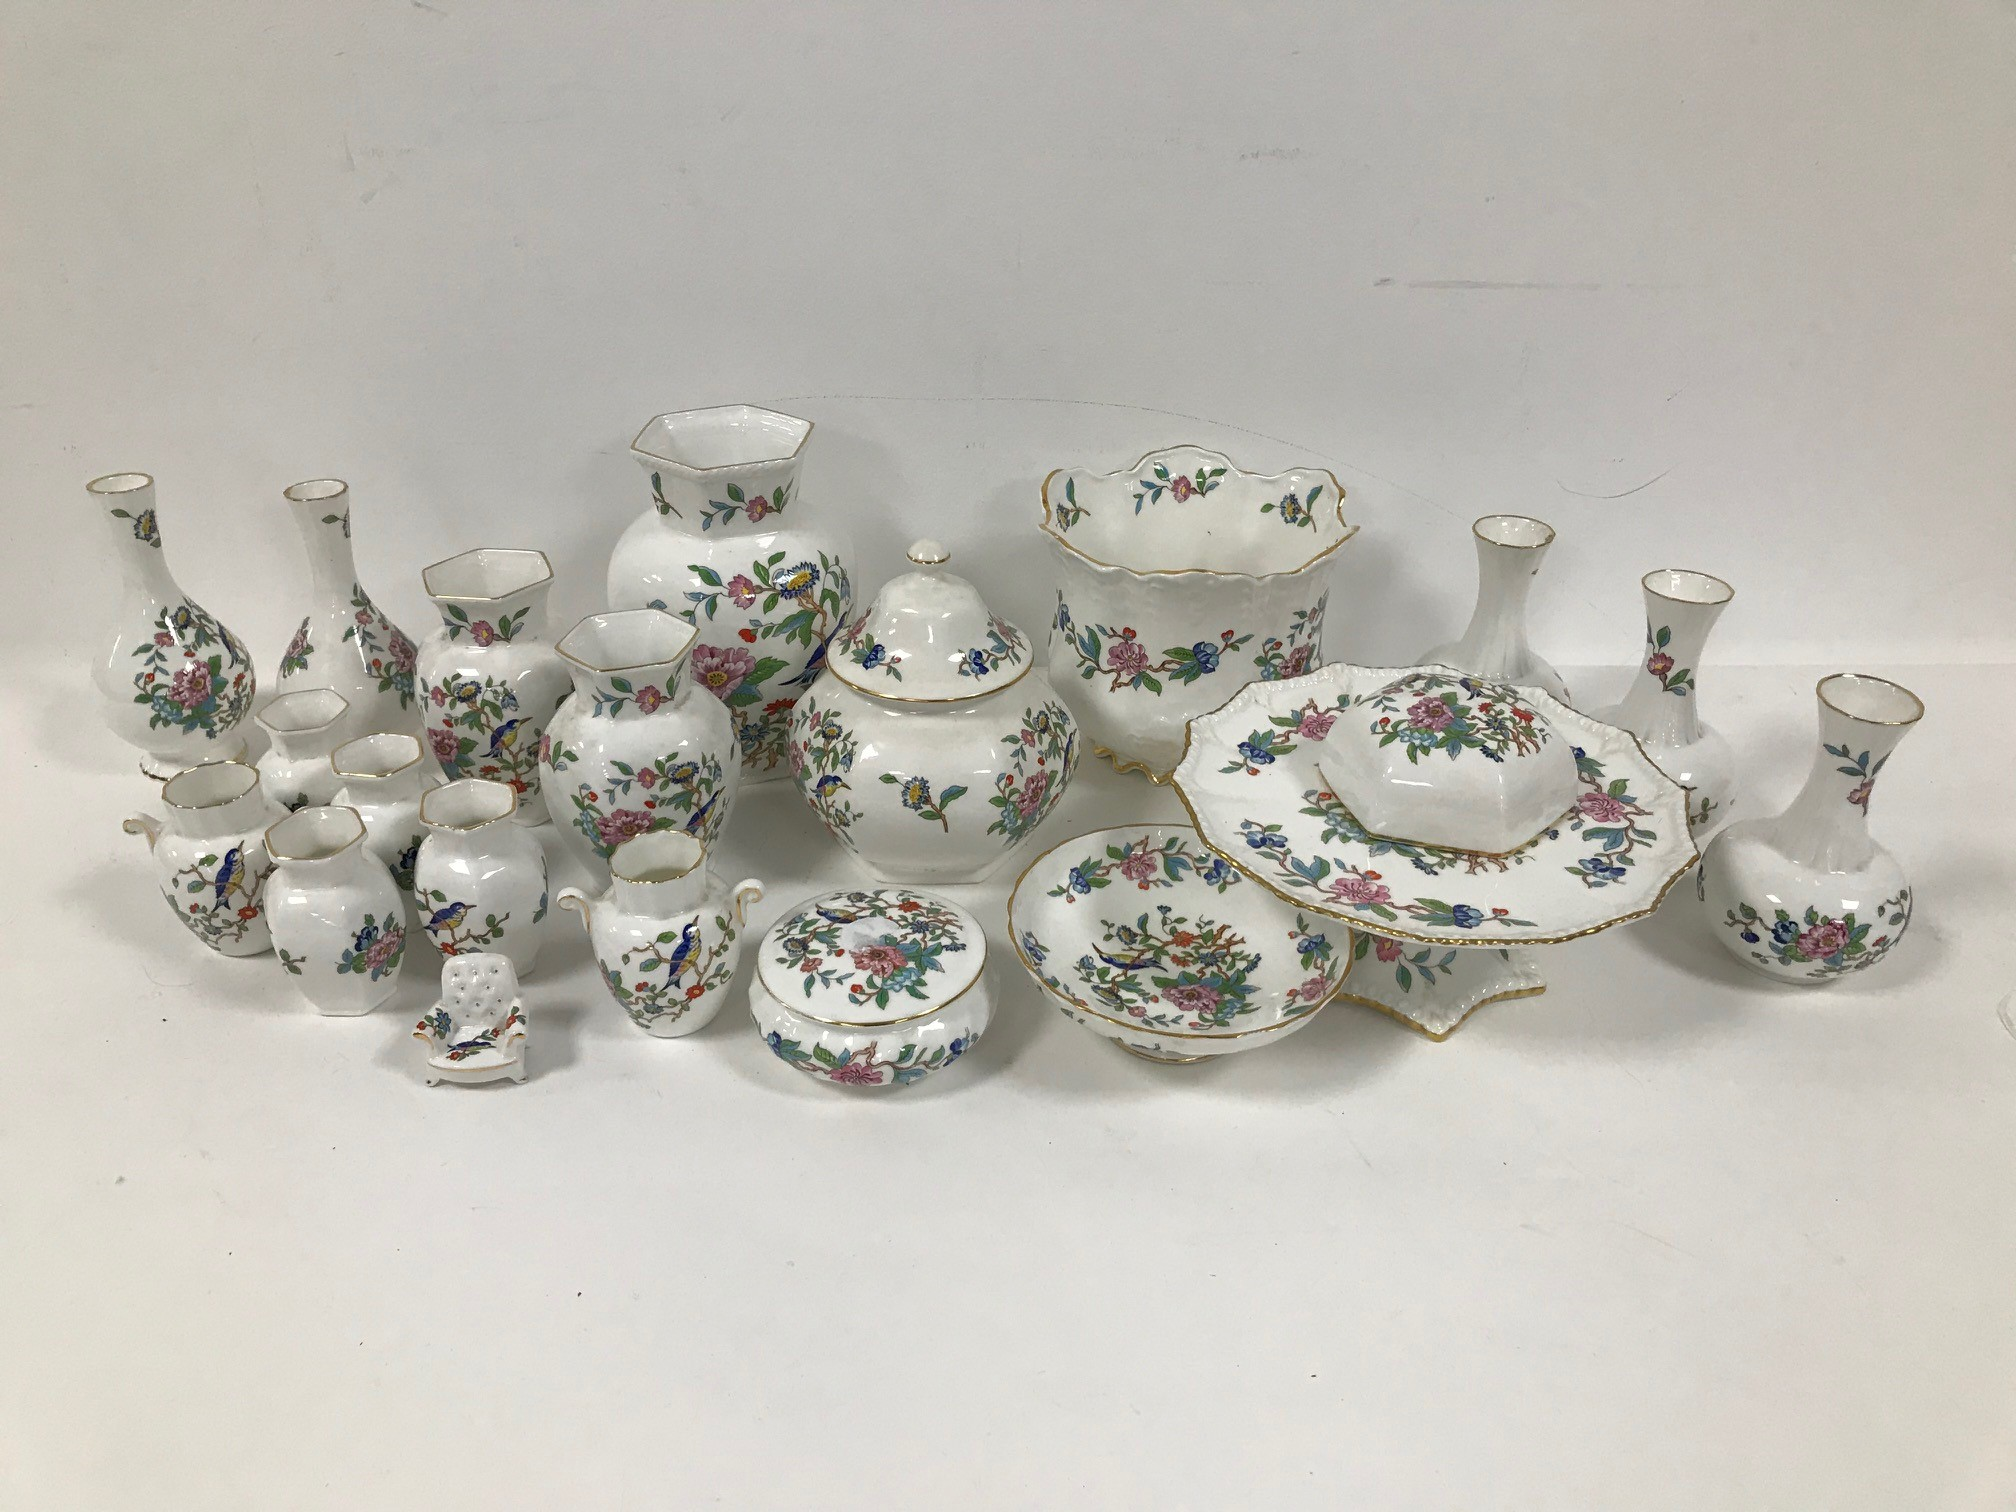 A collection of Aynsley porcelain Pembroke pattern items, including cake stand, vases, plant pot and